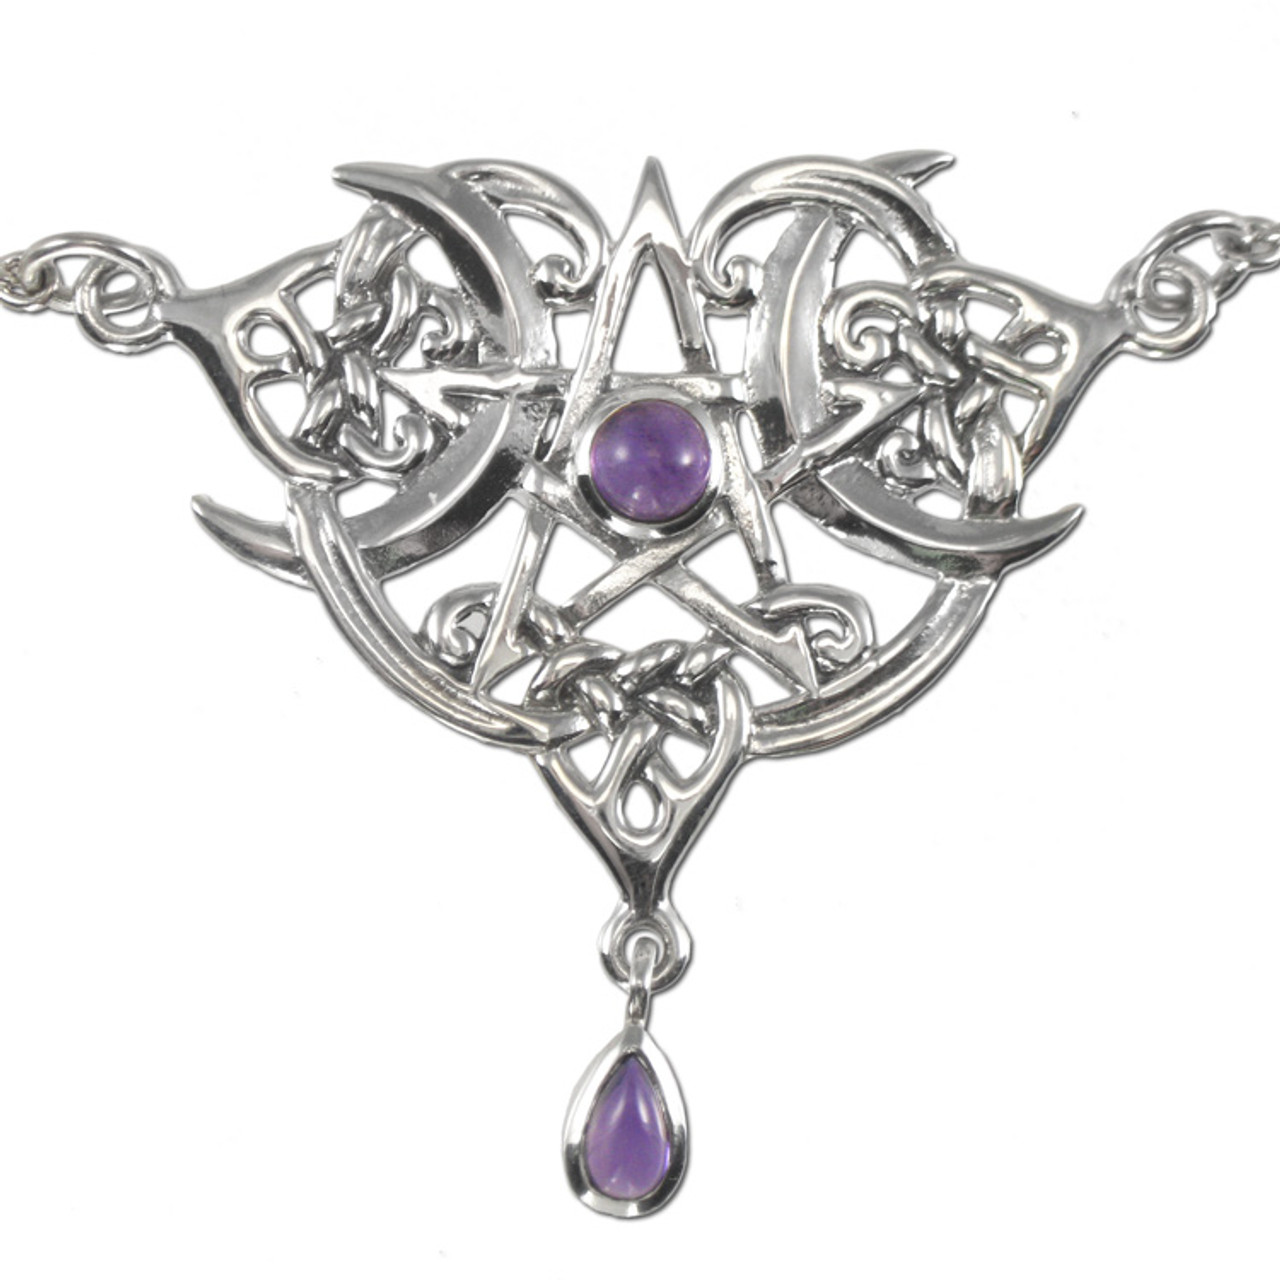 Sterling Silver Heart Pentacle Pentagram Necklace with Amethyst by Dryad Design